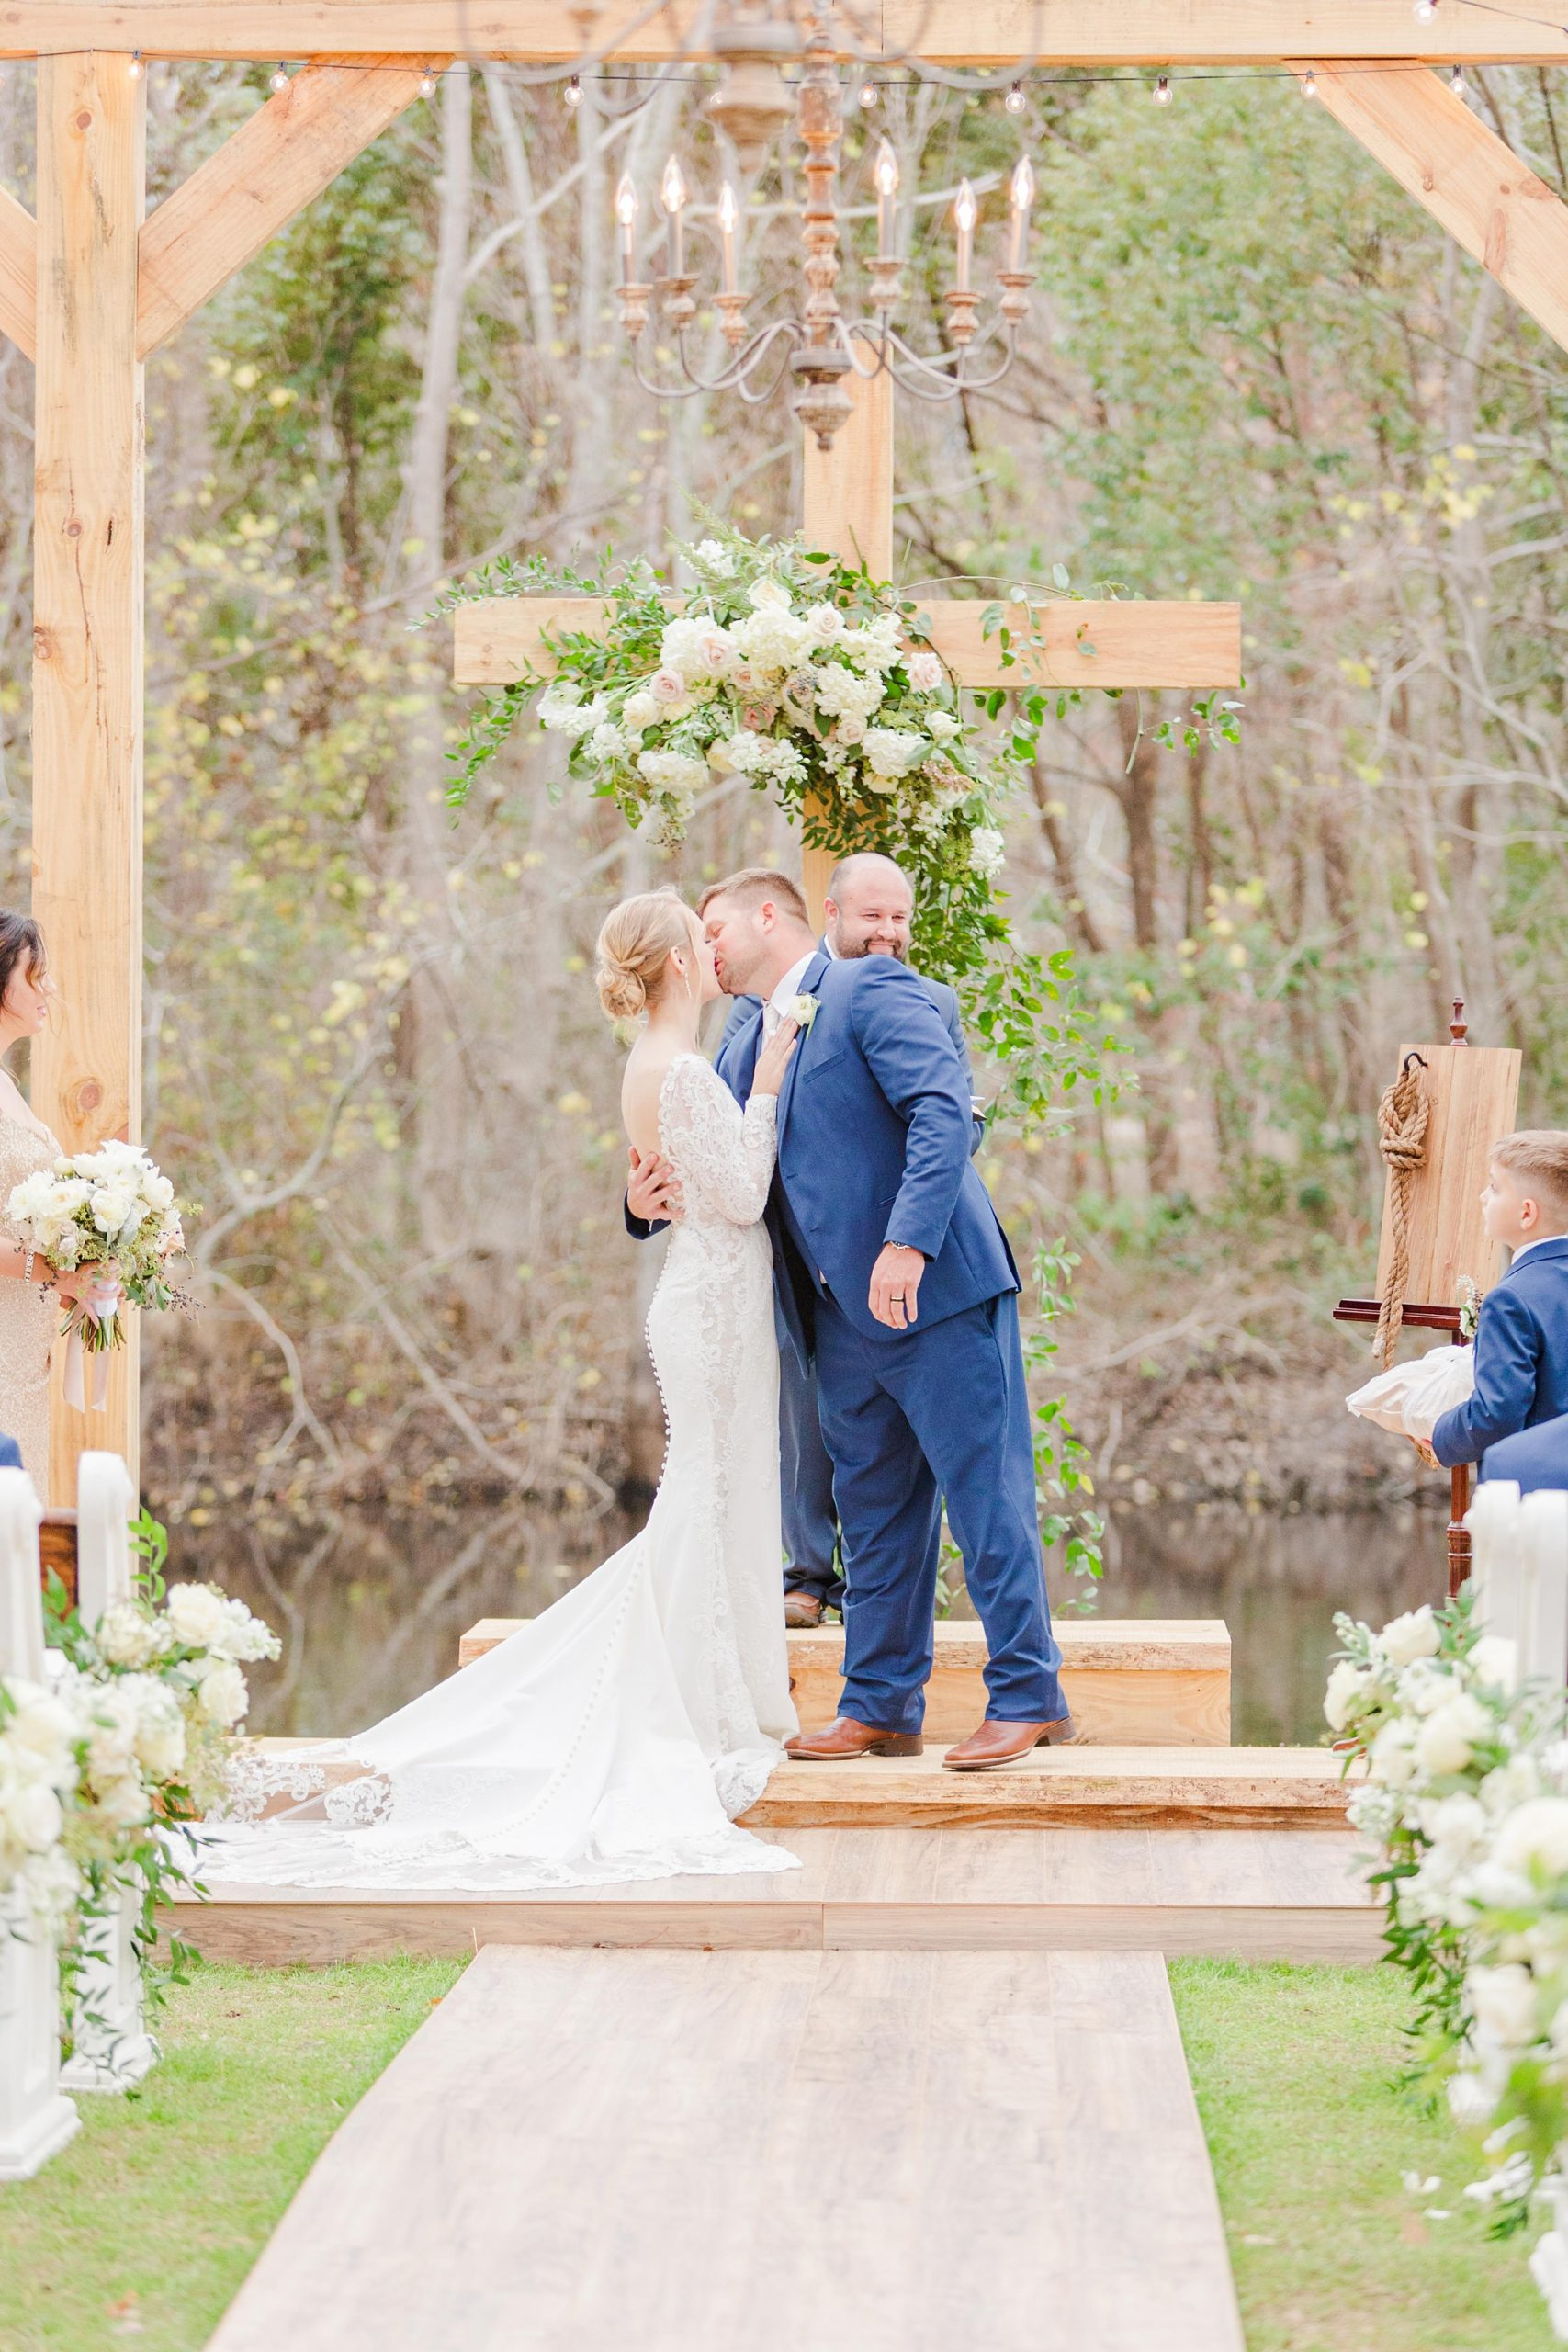 bride and groom kiss at wooden cross during ceremony